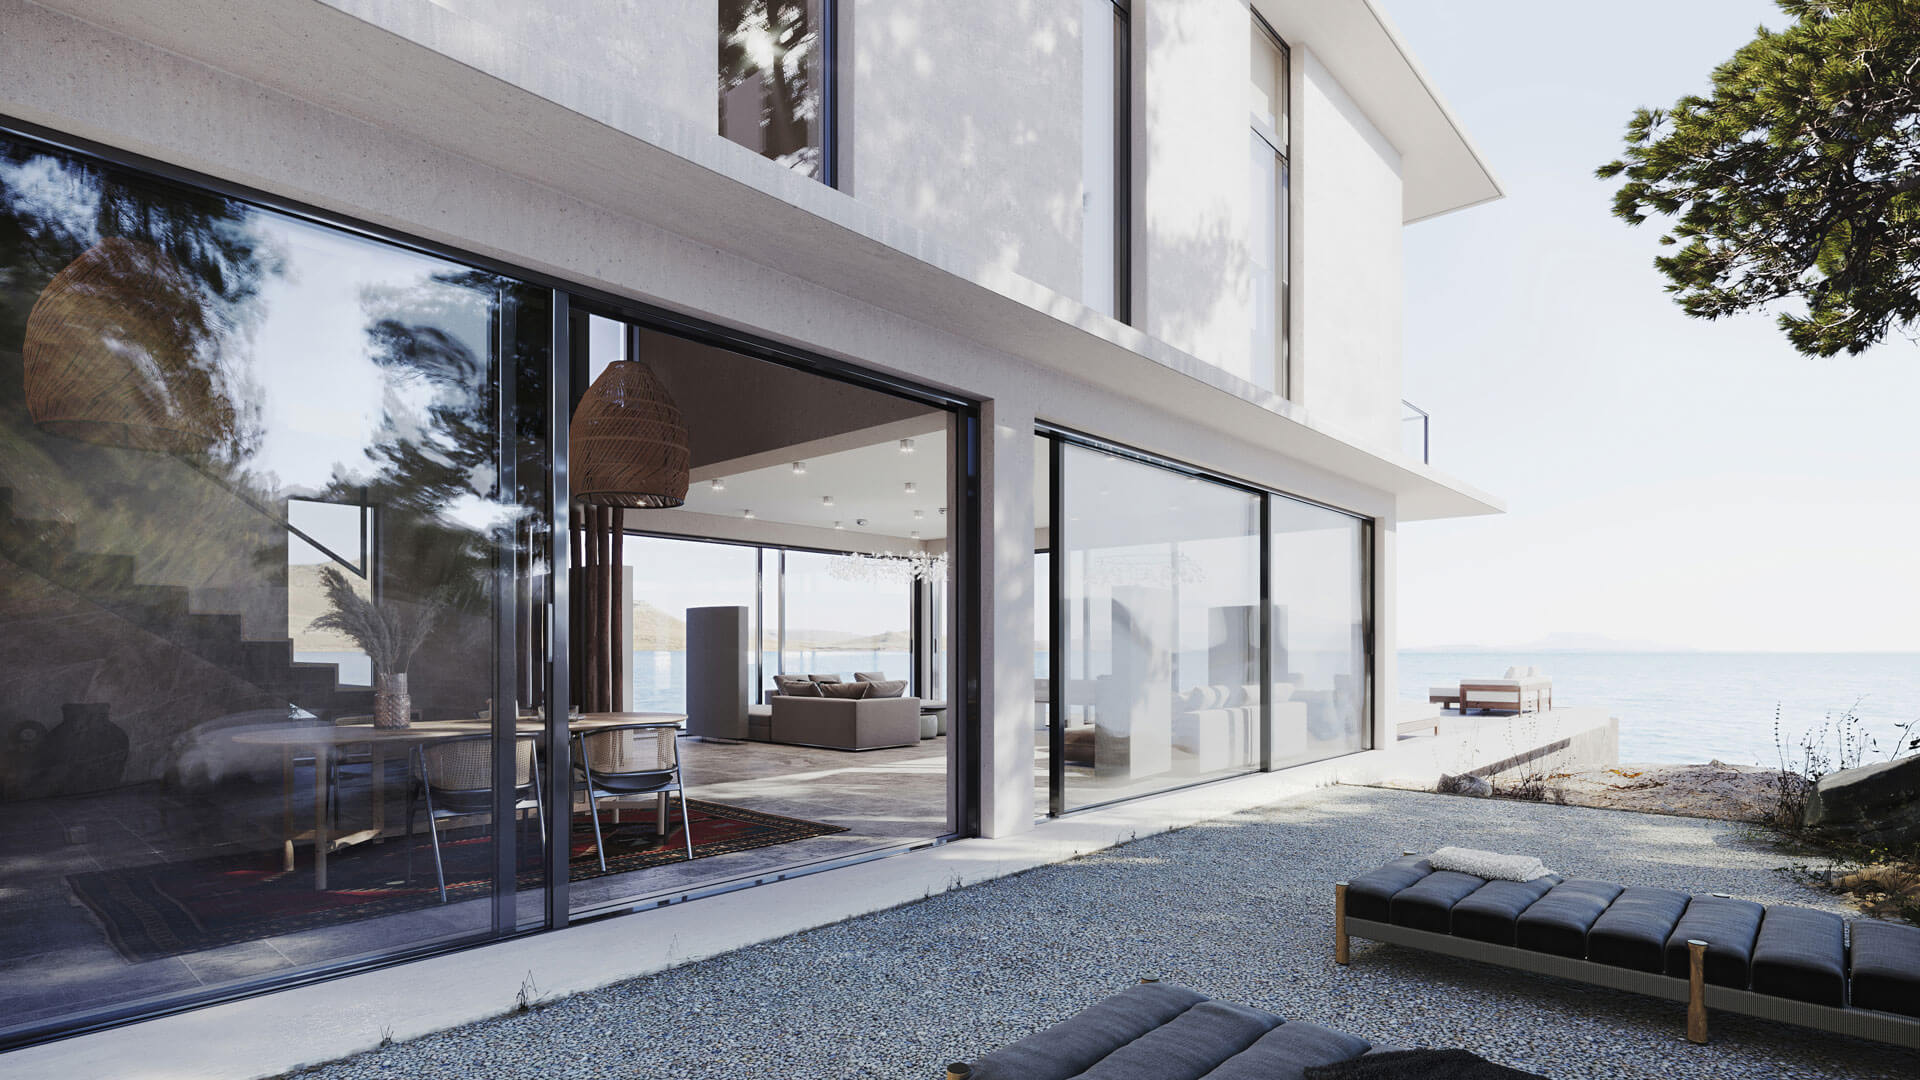 3D Architectural Visualization Of A Seaside Villa Exterior